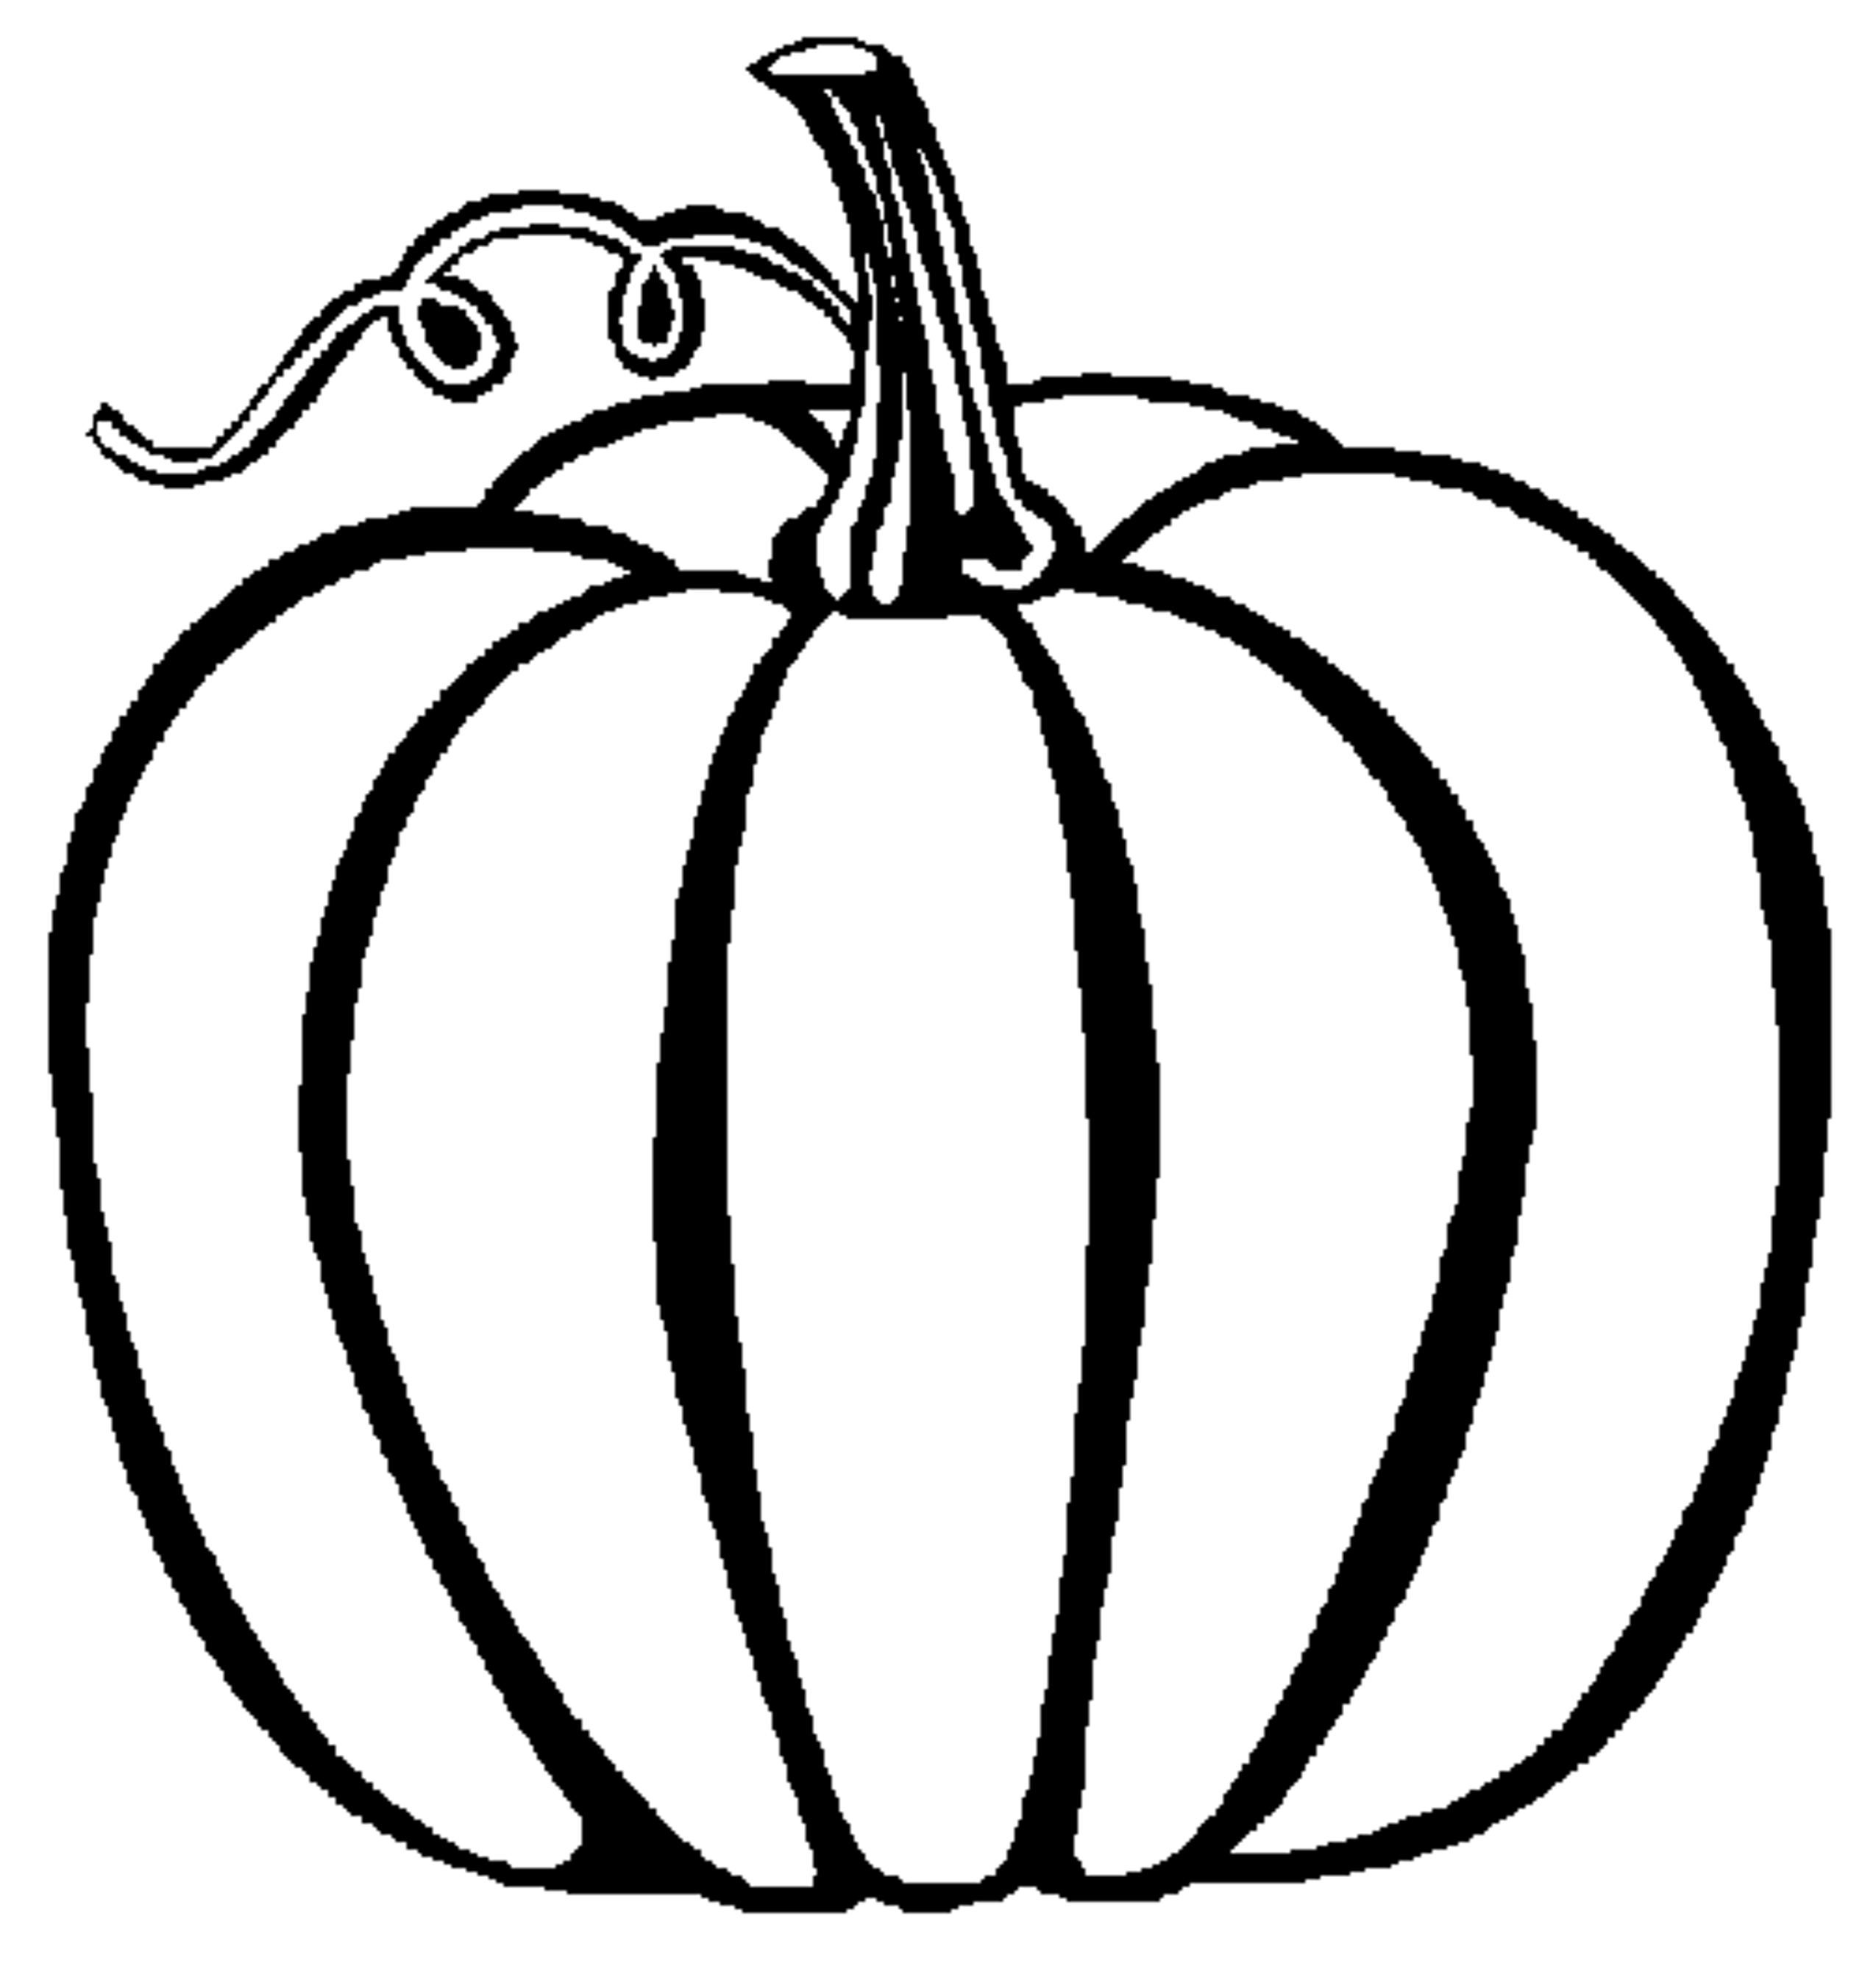 Cool Pumpkin Coloring Page Printable As Wells As Christian Pumpkin